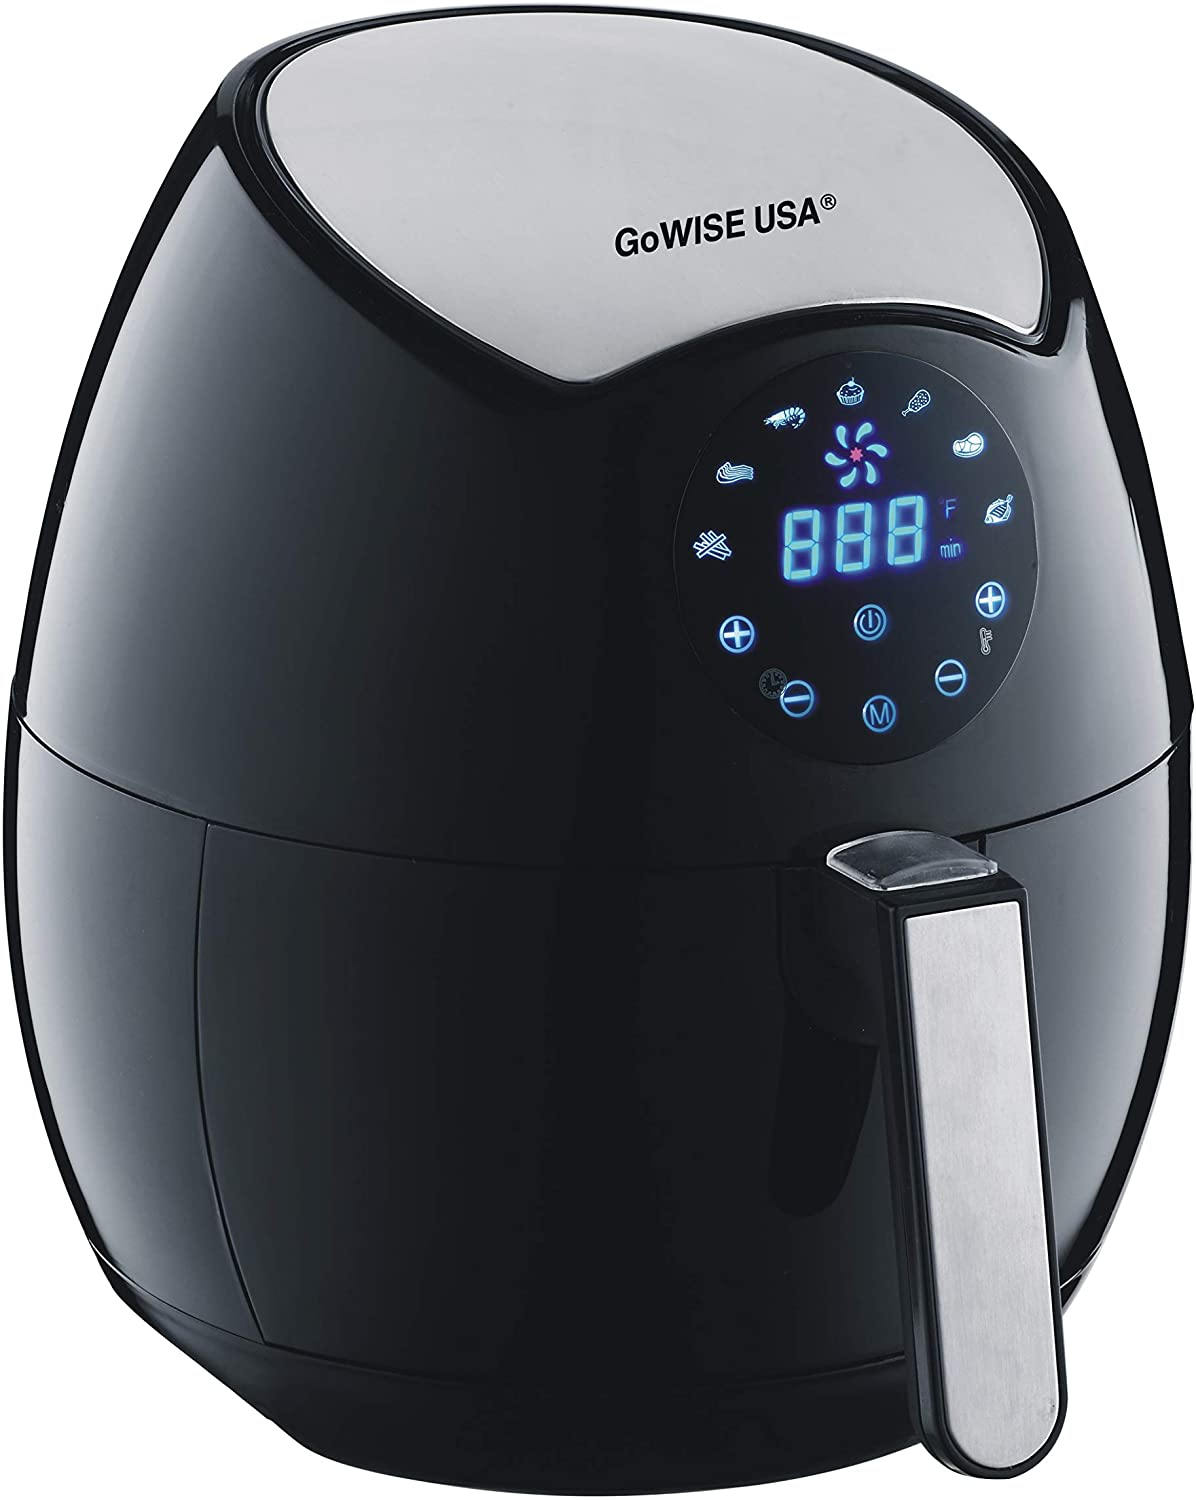 GoWISE USA Ming's Mark GW22621 Electric Air Fryer, 3